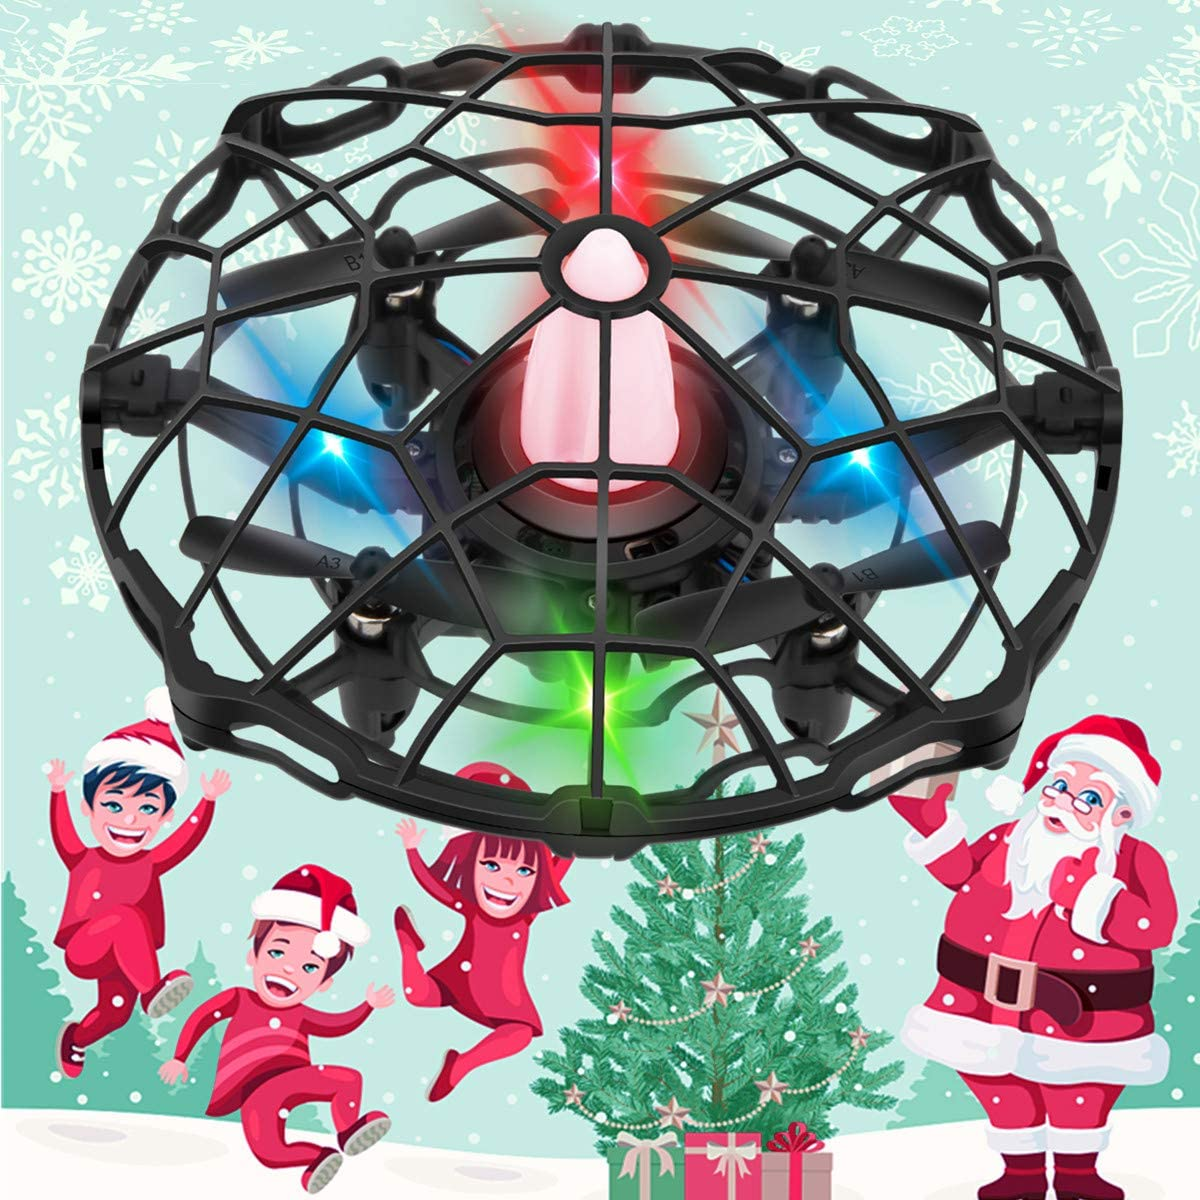 Mini Drones 360° Rotating Smart Mini UFO Drone for Kids Toys Xmas Holiday Gifts